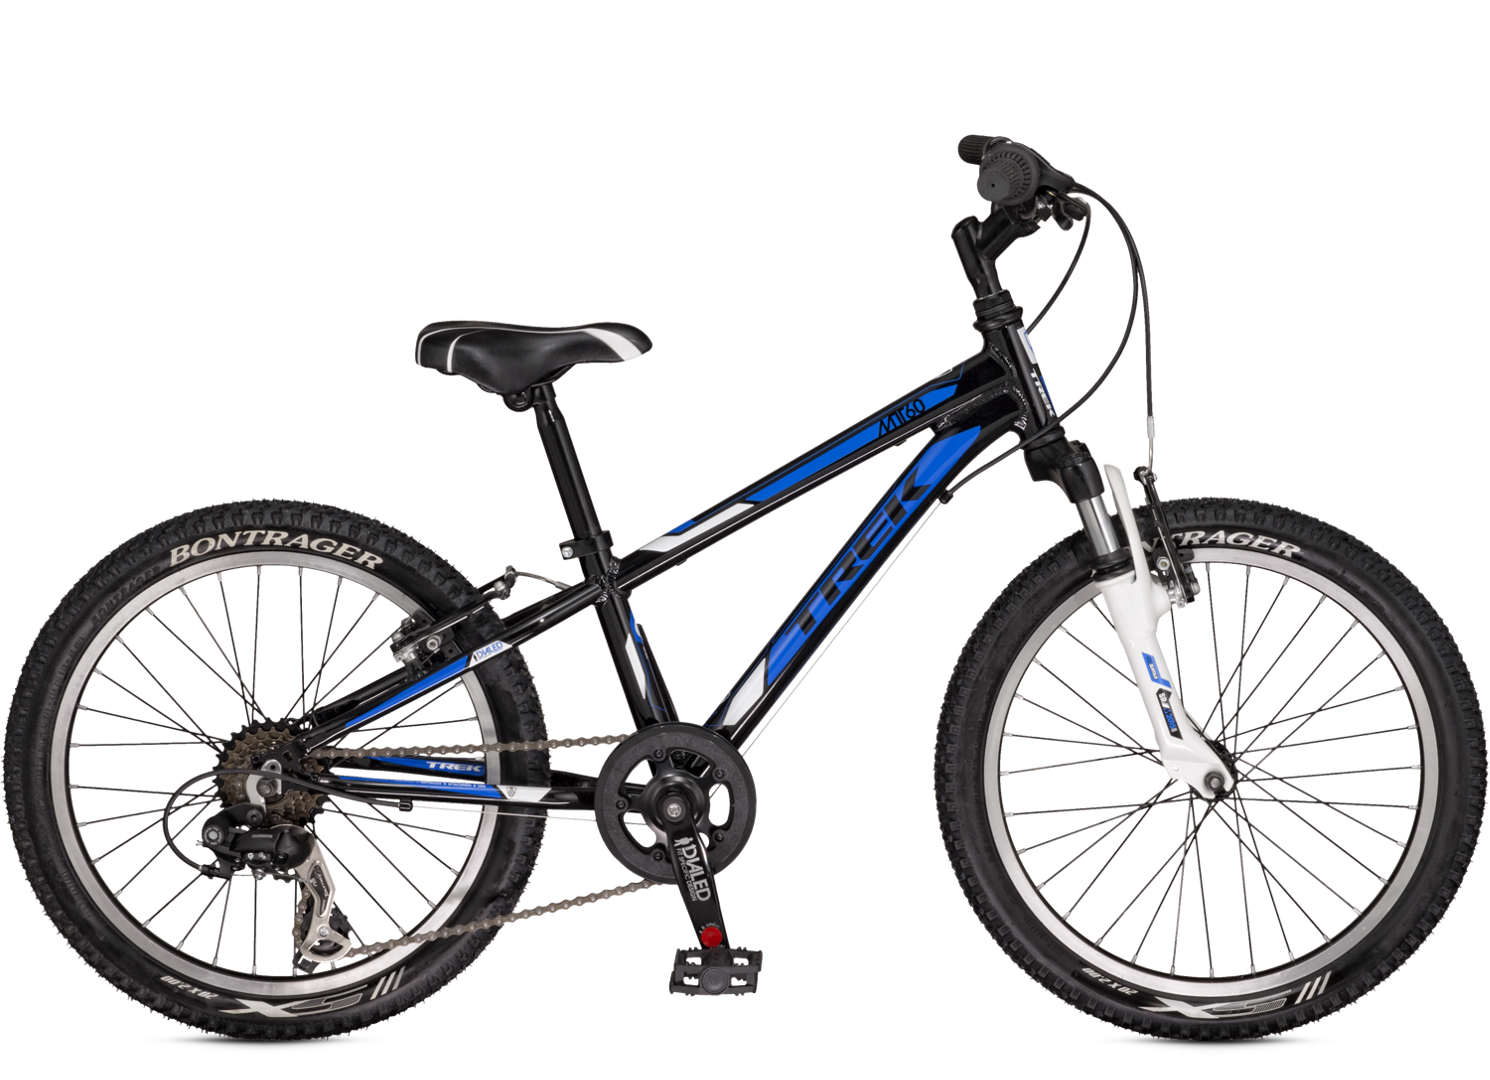 This image has been resized. Click this bar to view the full image. The  original image is sized 1490x1080. - Boy Bike PNG